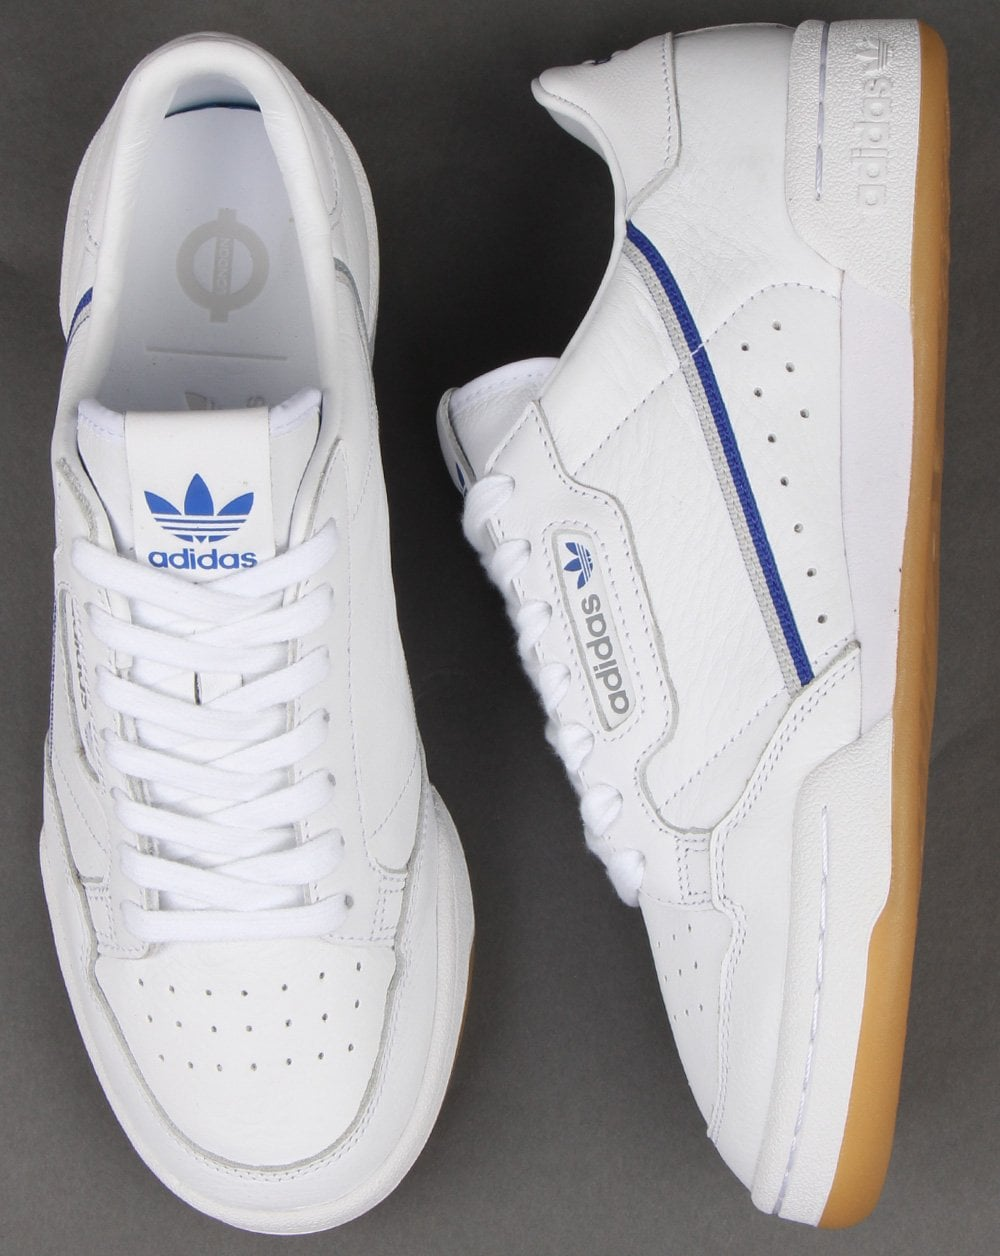 0d5a4d79f67 Adidas Continental 80 x TFL Trainers White grey blue